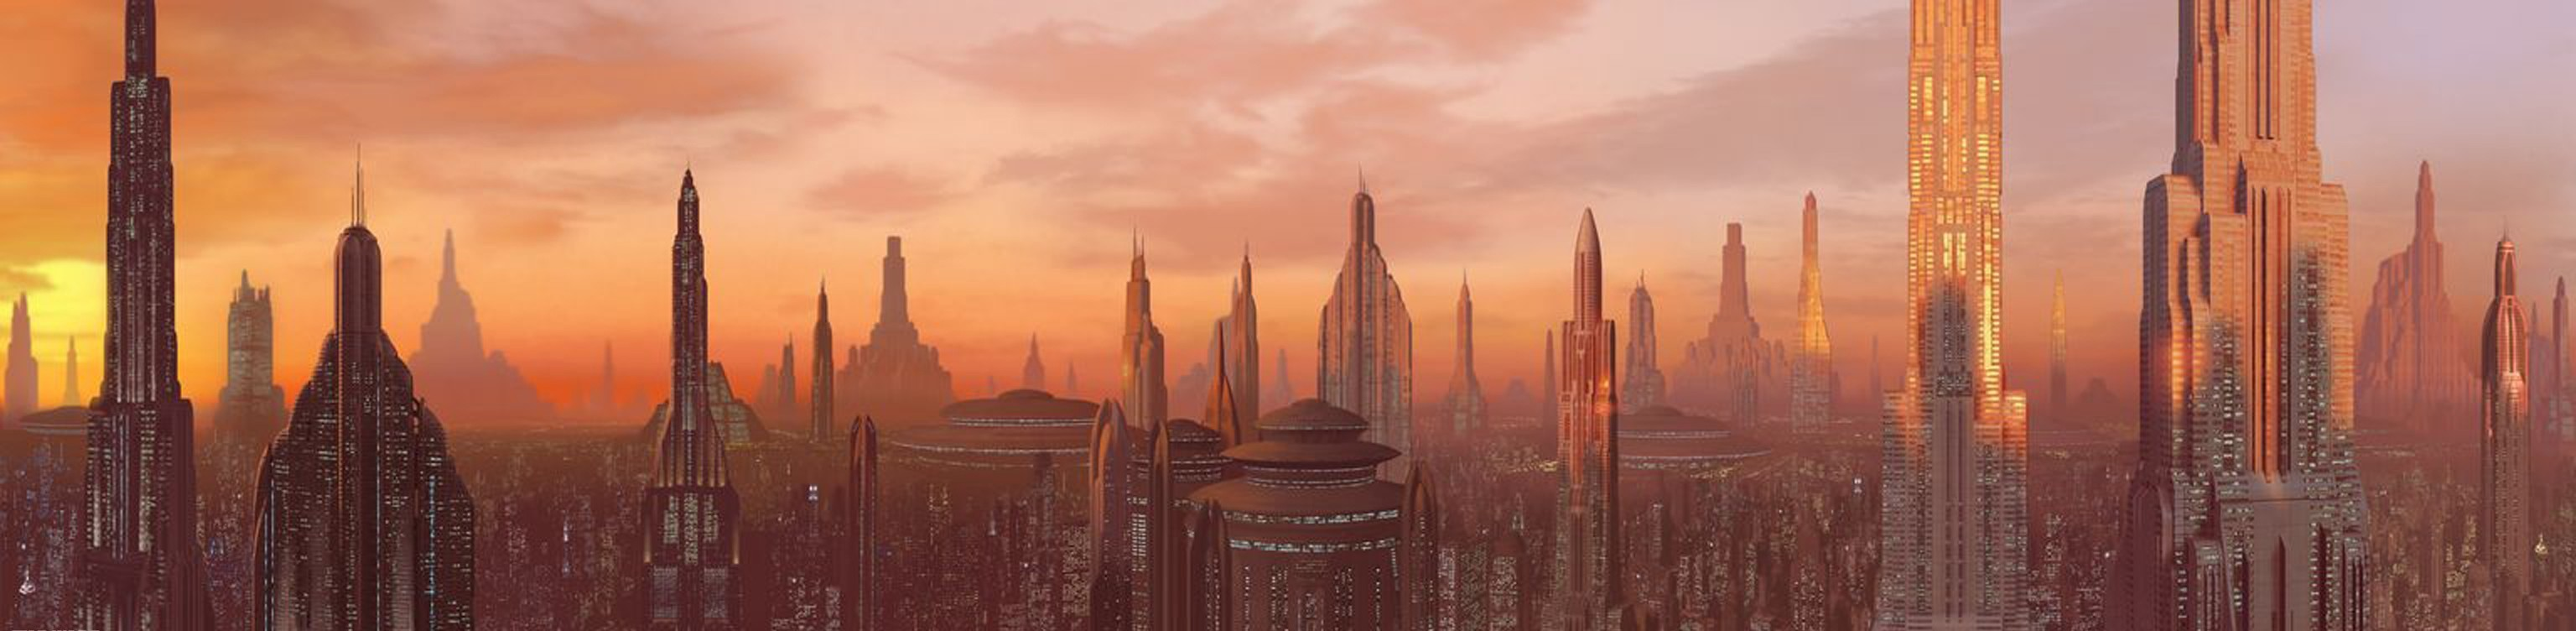 Coruscant skyline high Car HD Wallpaper